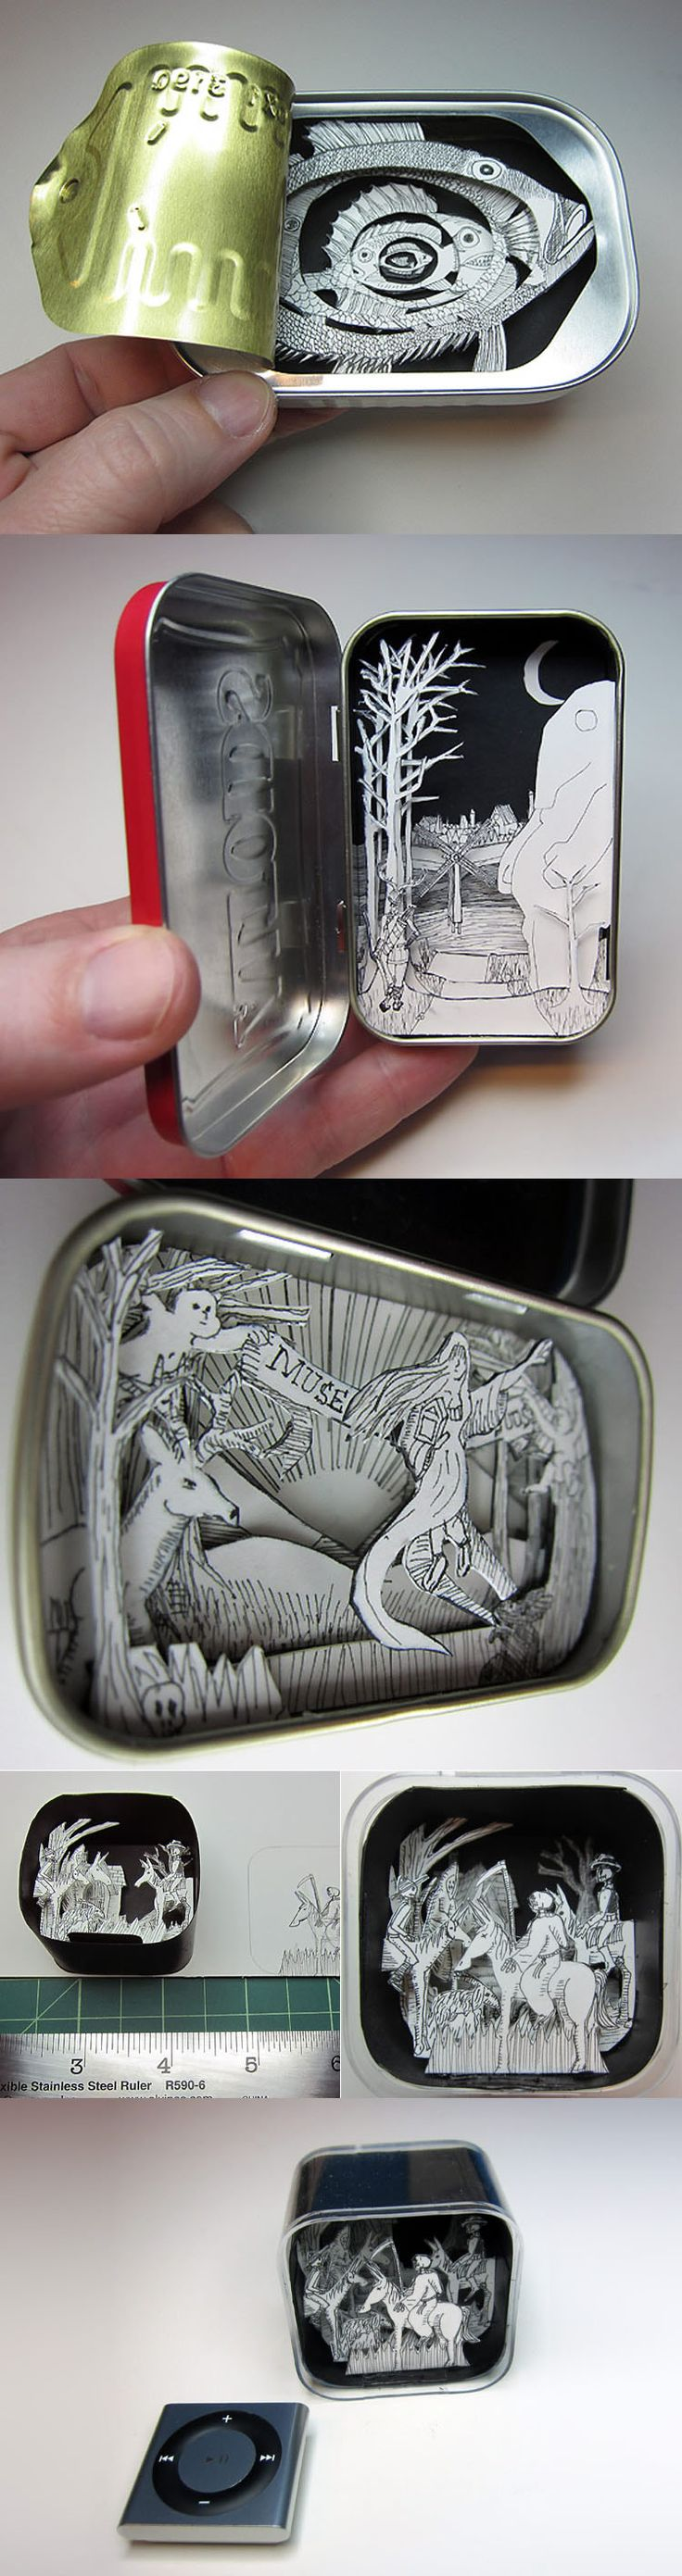 shadow box tins by Jim Doran